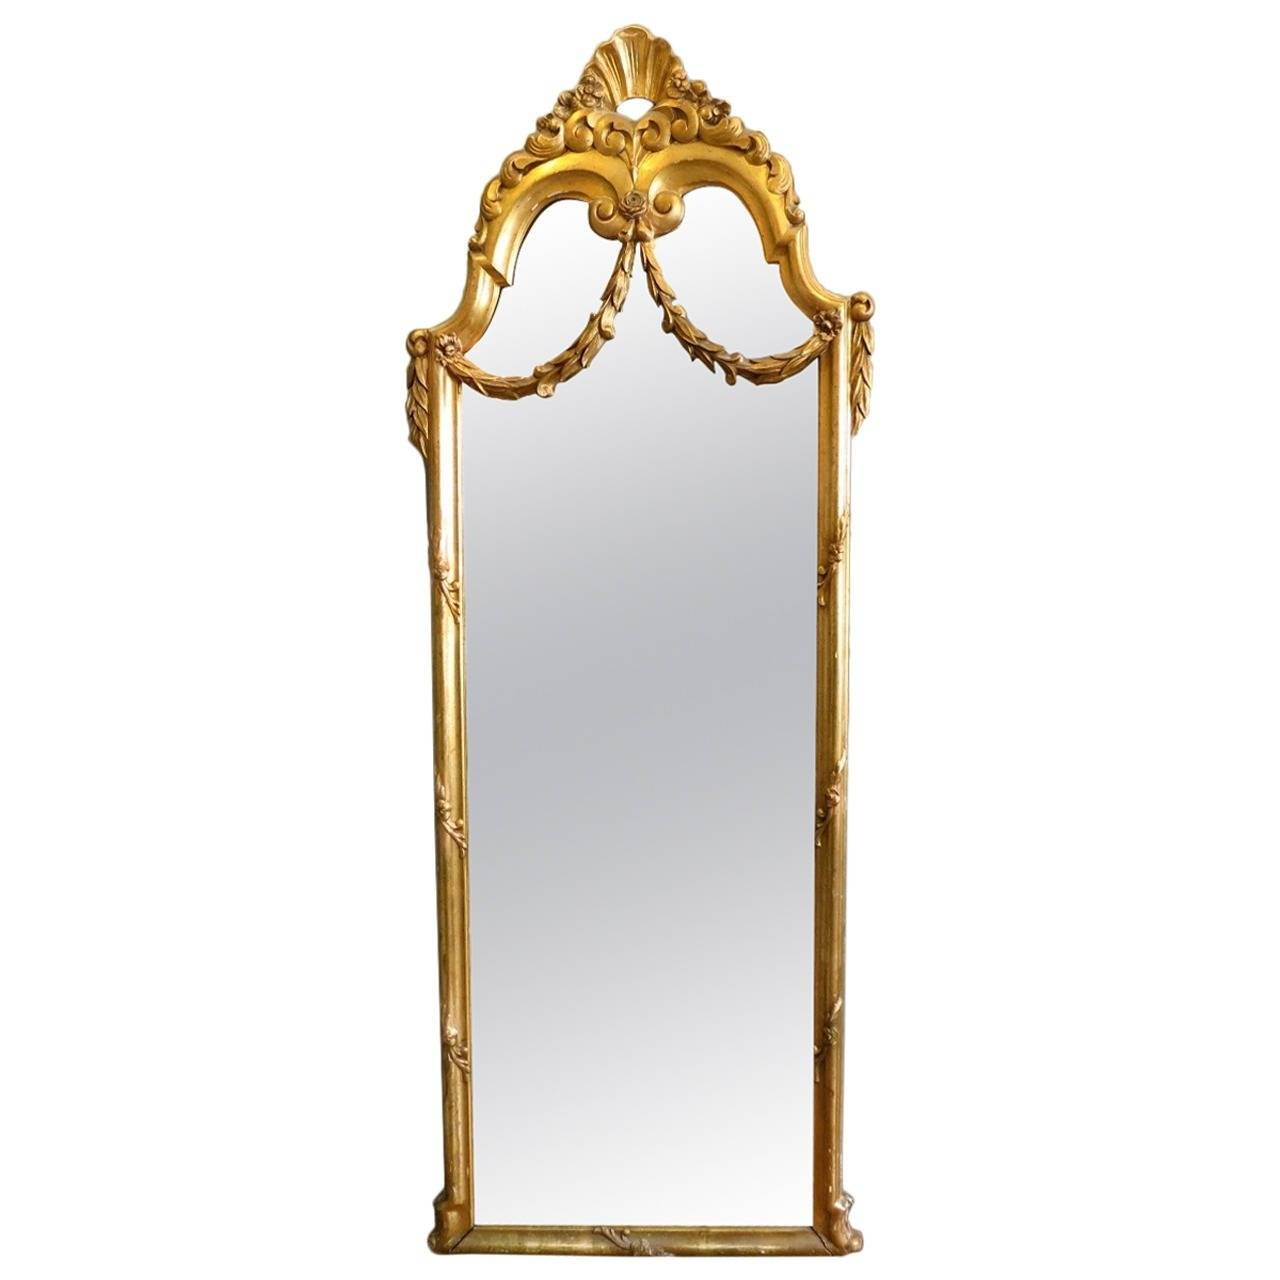 Antique French Gold Gilt Floor Standing Mirror At 1Stdibs in Antique Gold Mirrors French (Image 11 of 25)